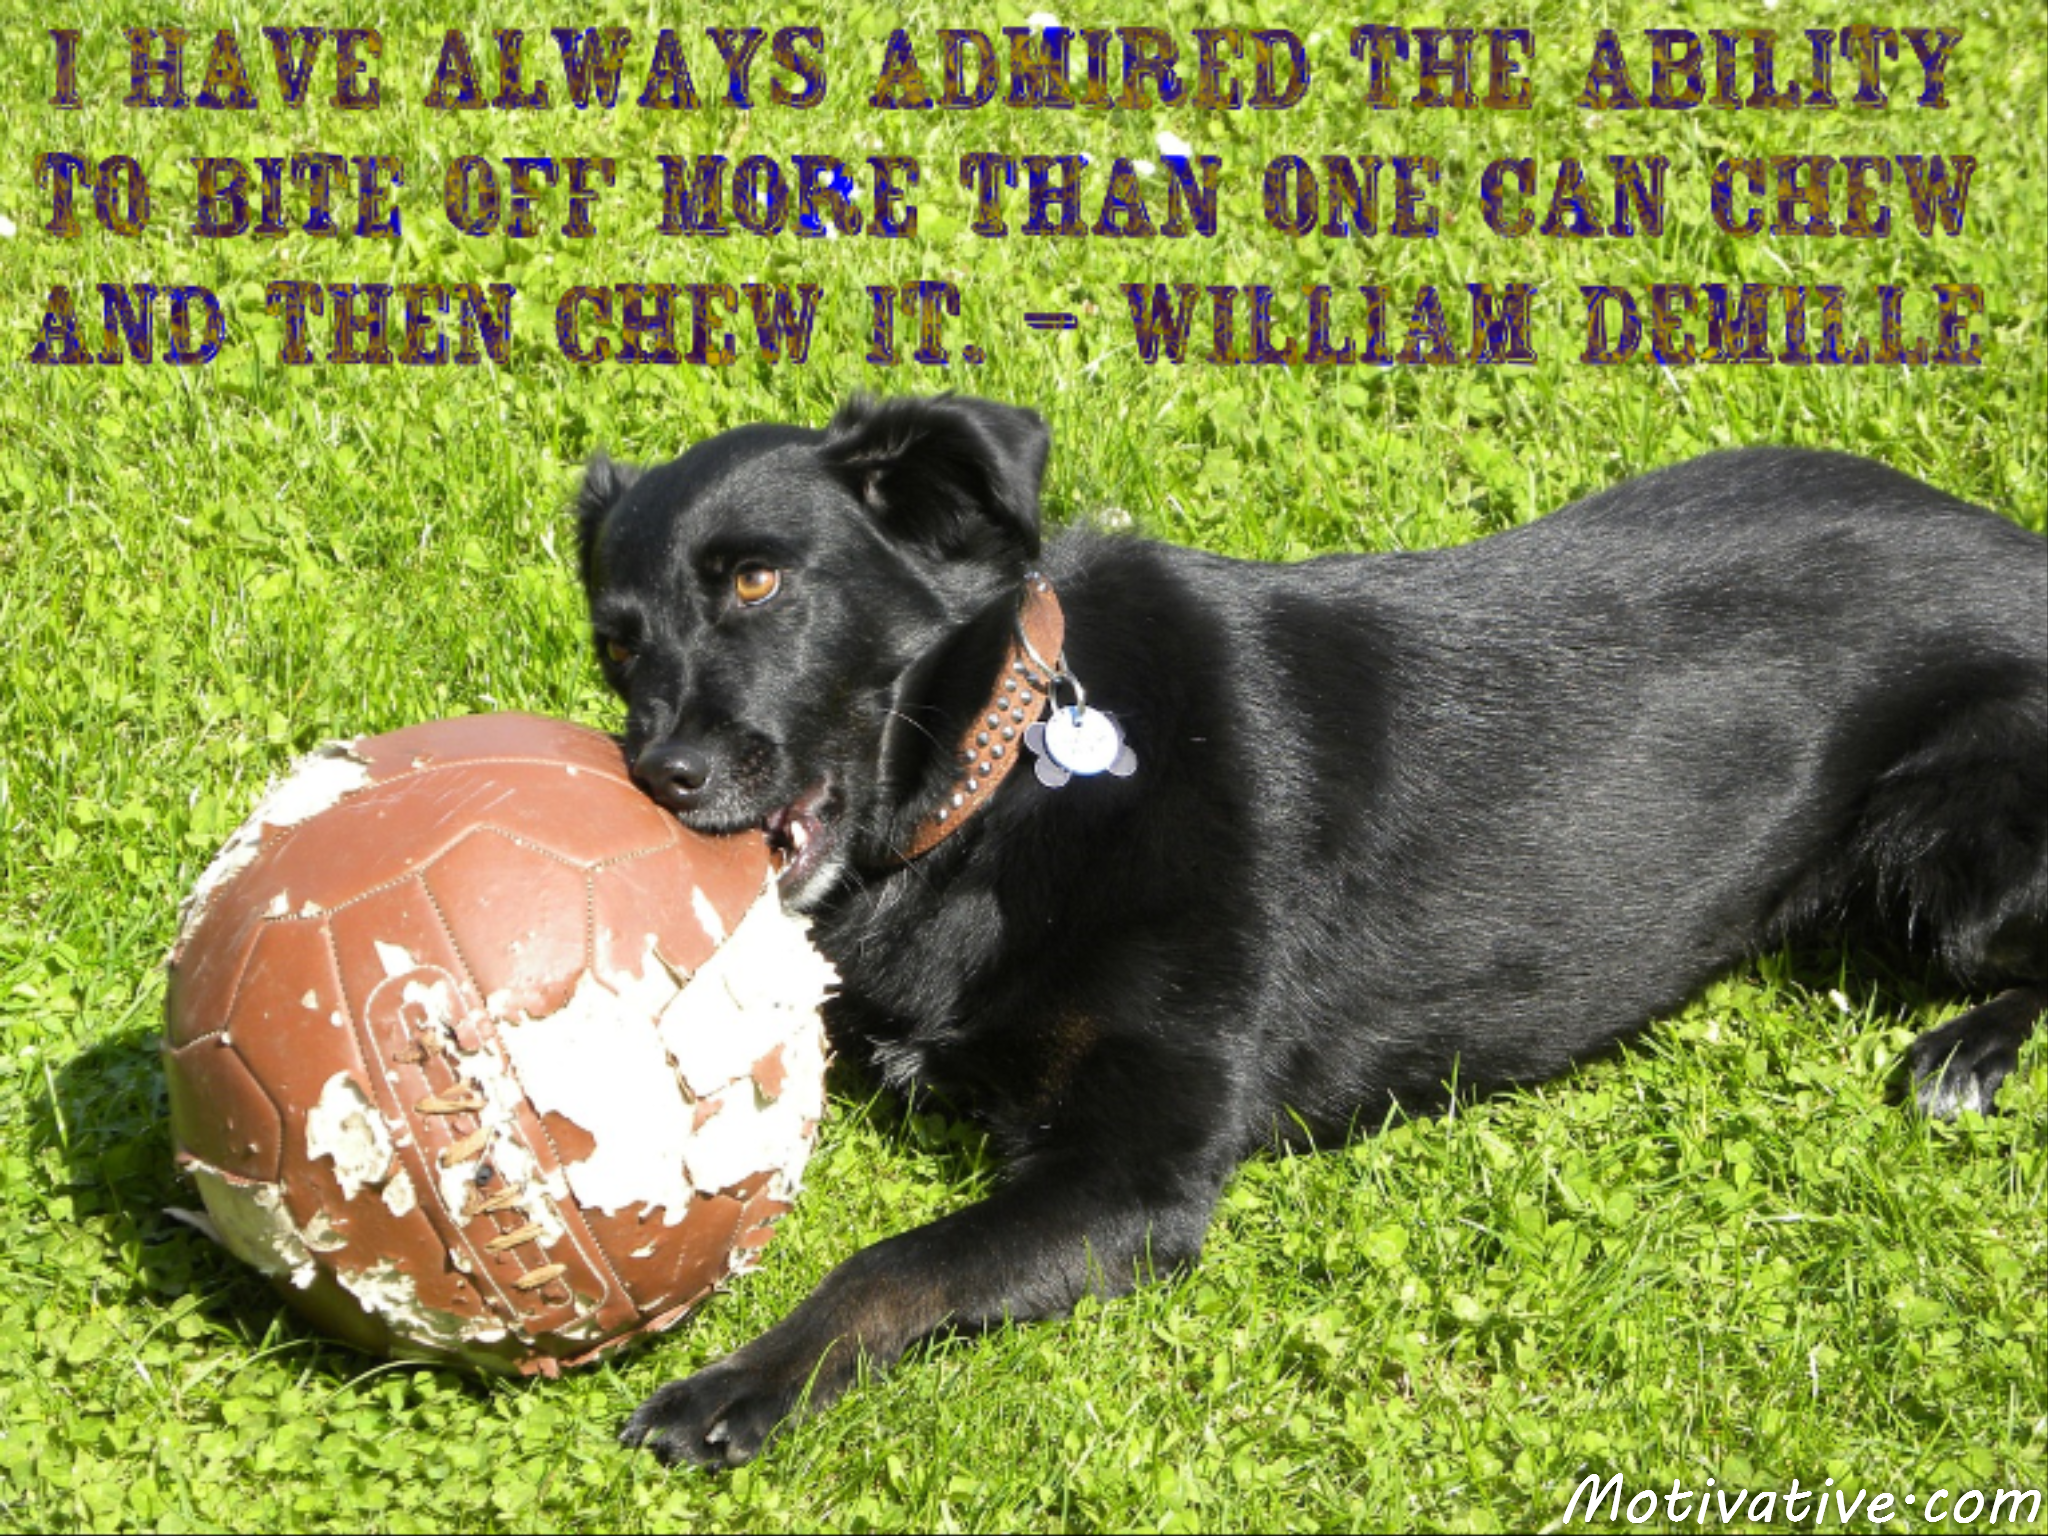 I have always admired the ability to bite off more than one can chew and then chew it. – William DeMille